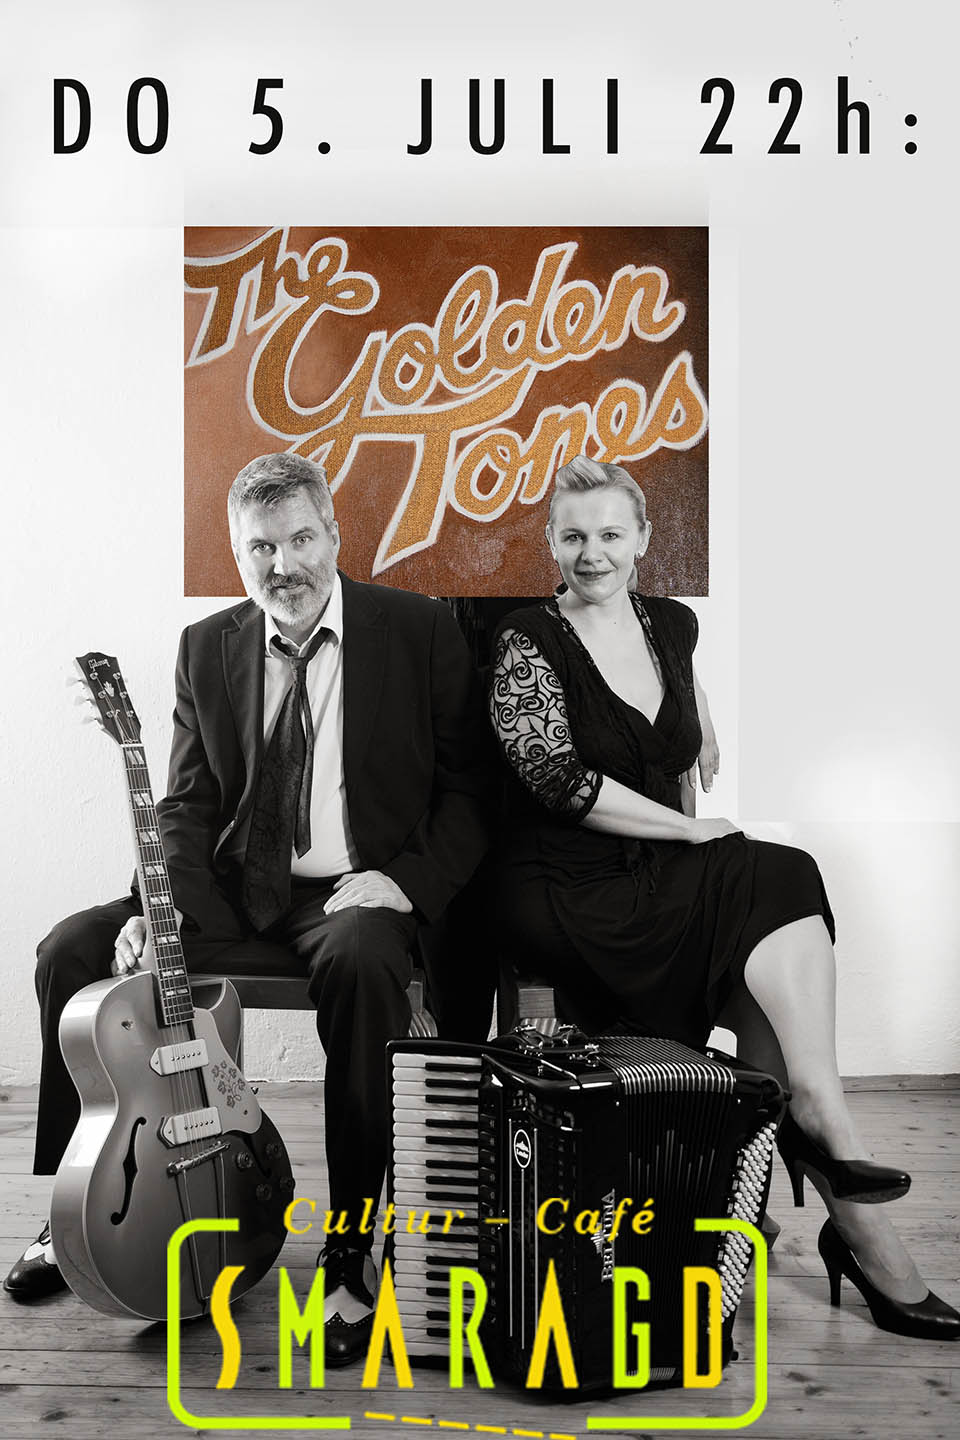 Cultur Cafe Smaragd Linz-The Golden Tones